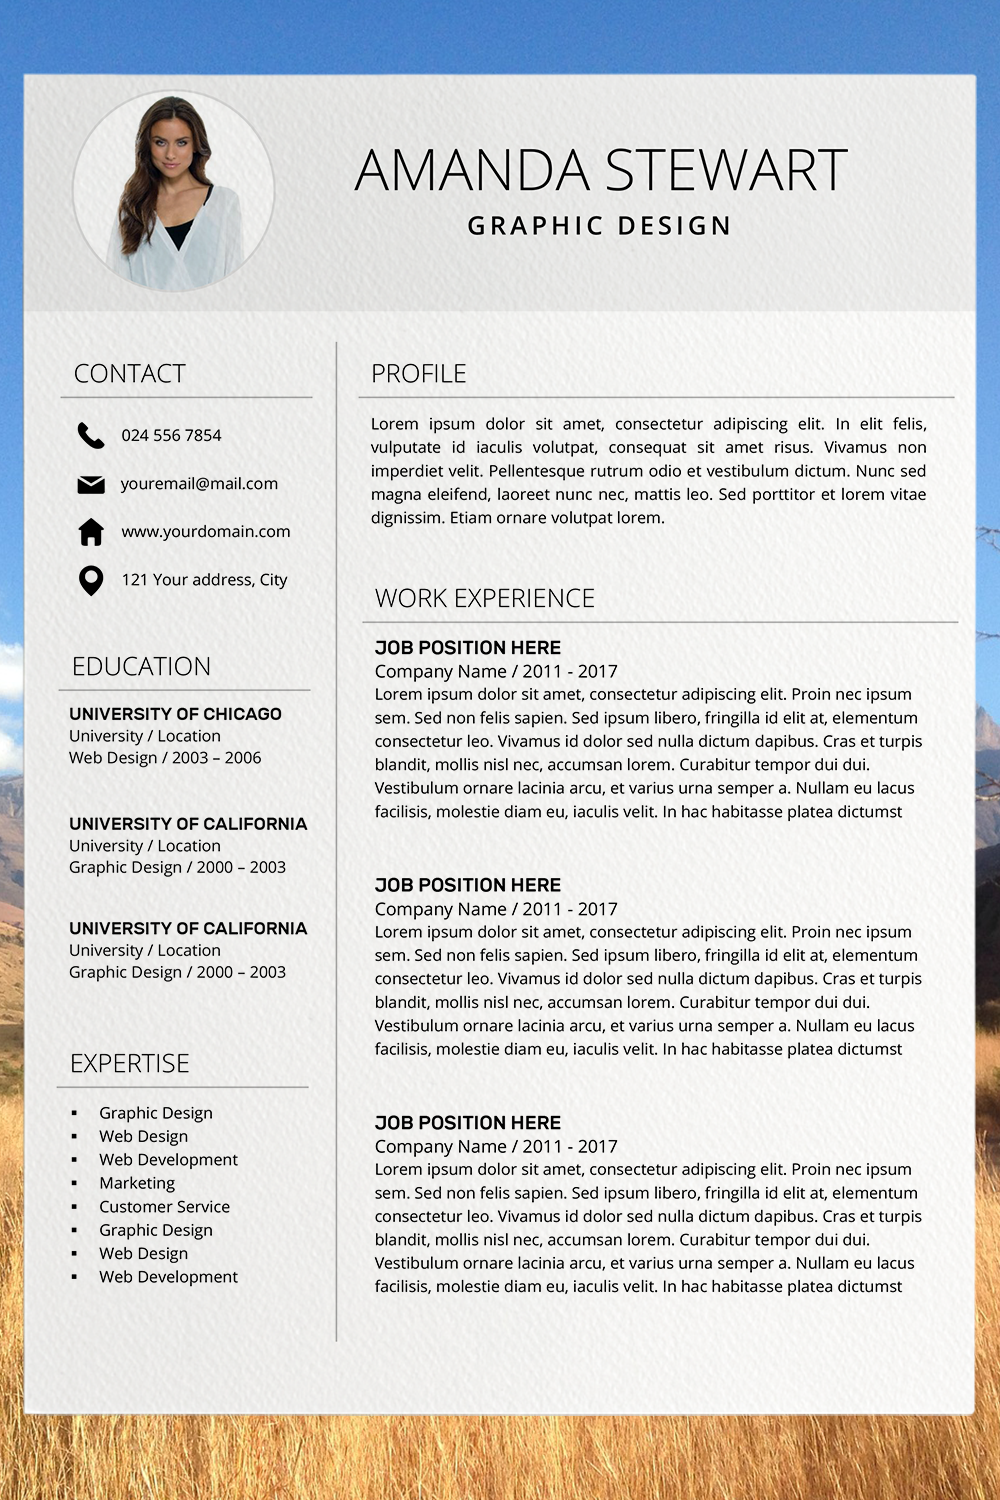 Resume Template | CV + Cover Letter in 2020 | Resume template professional, Resume template word ...